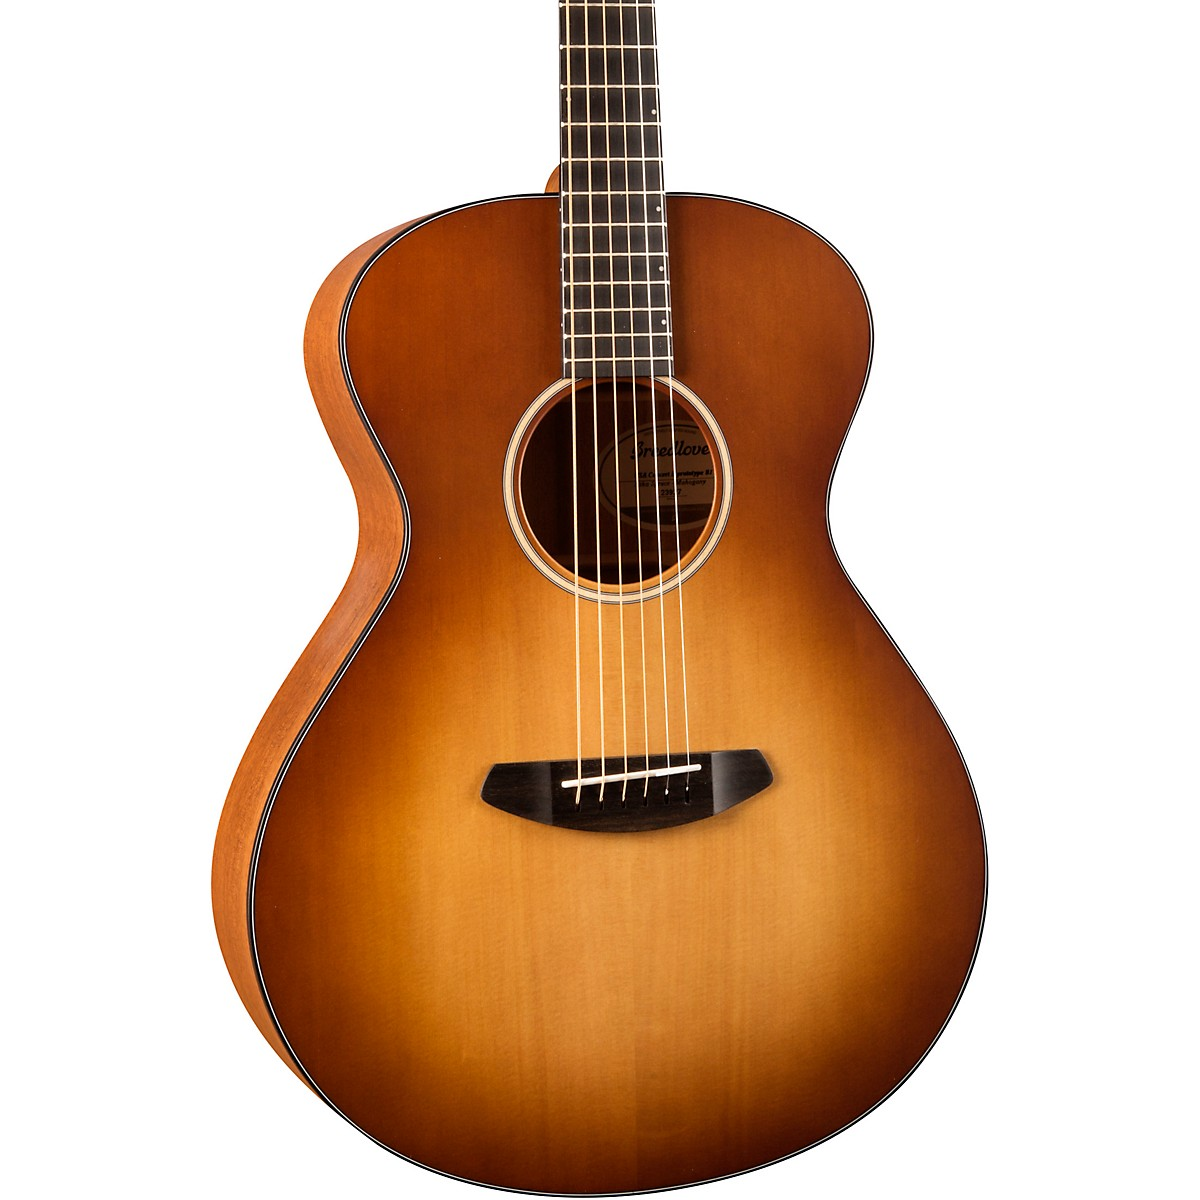 Breedlove USA Concert E Sitka Spruce-Mahogany Acoustic/Electric Guitar